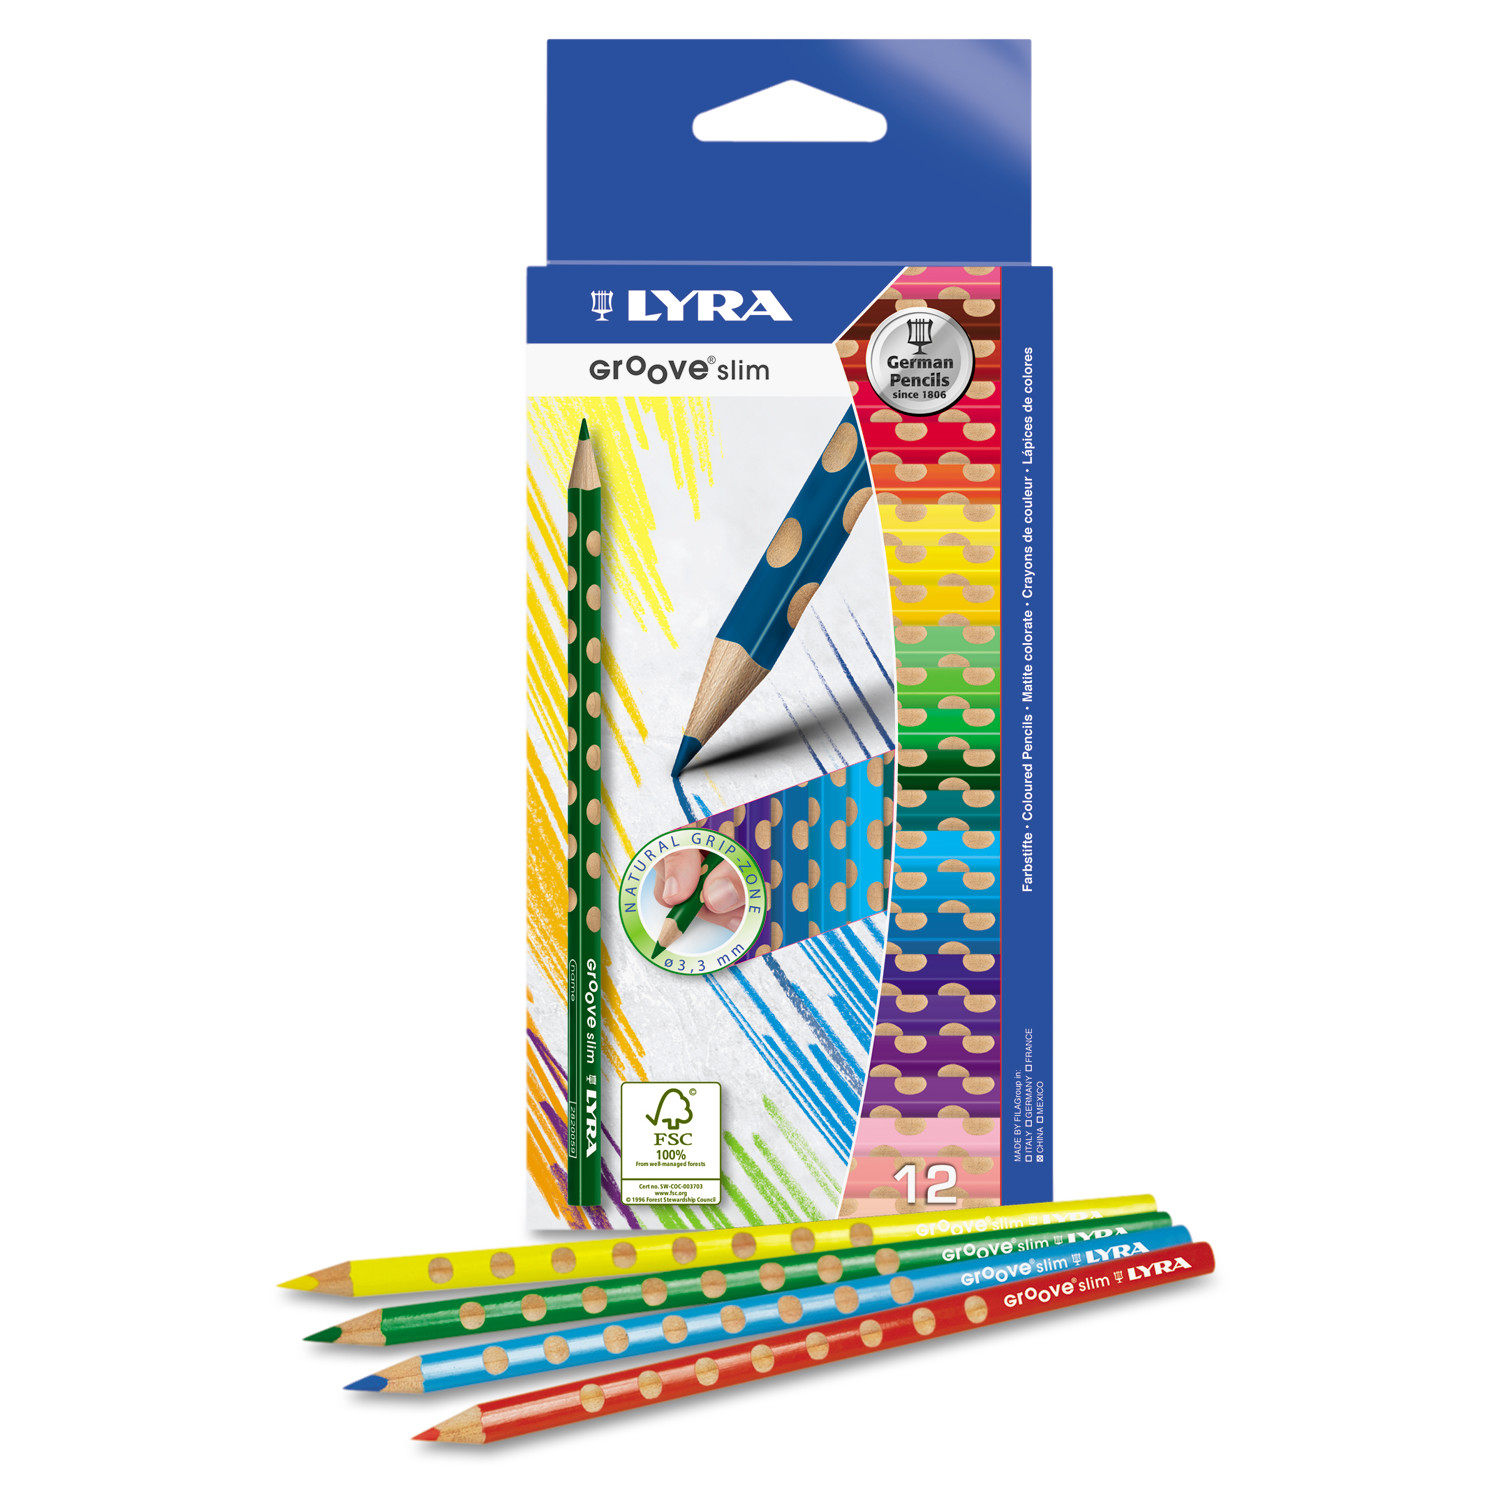 LYRA Groove Slim Colored Pencils, Assorted, 12/Pack